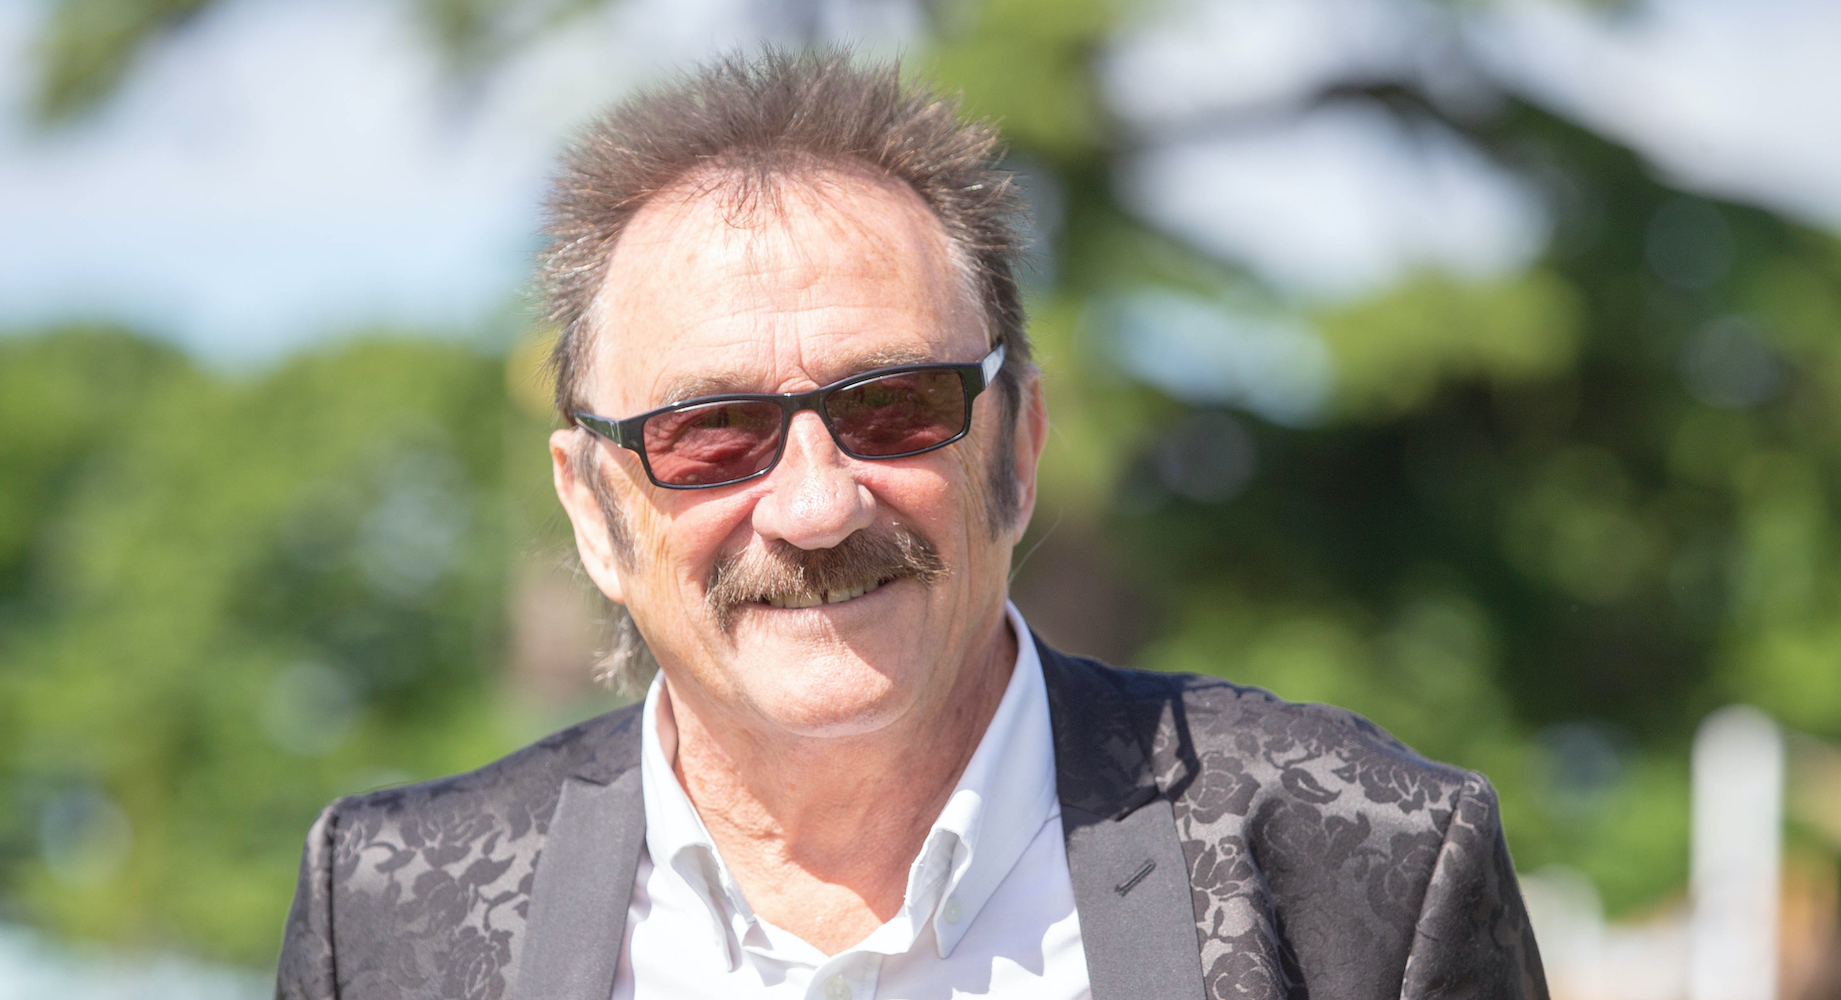 Paul Chuckle has been diagnosed with coronavirus